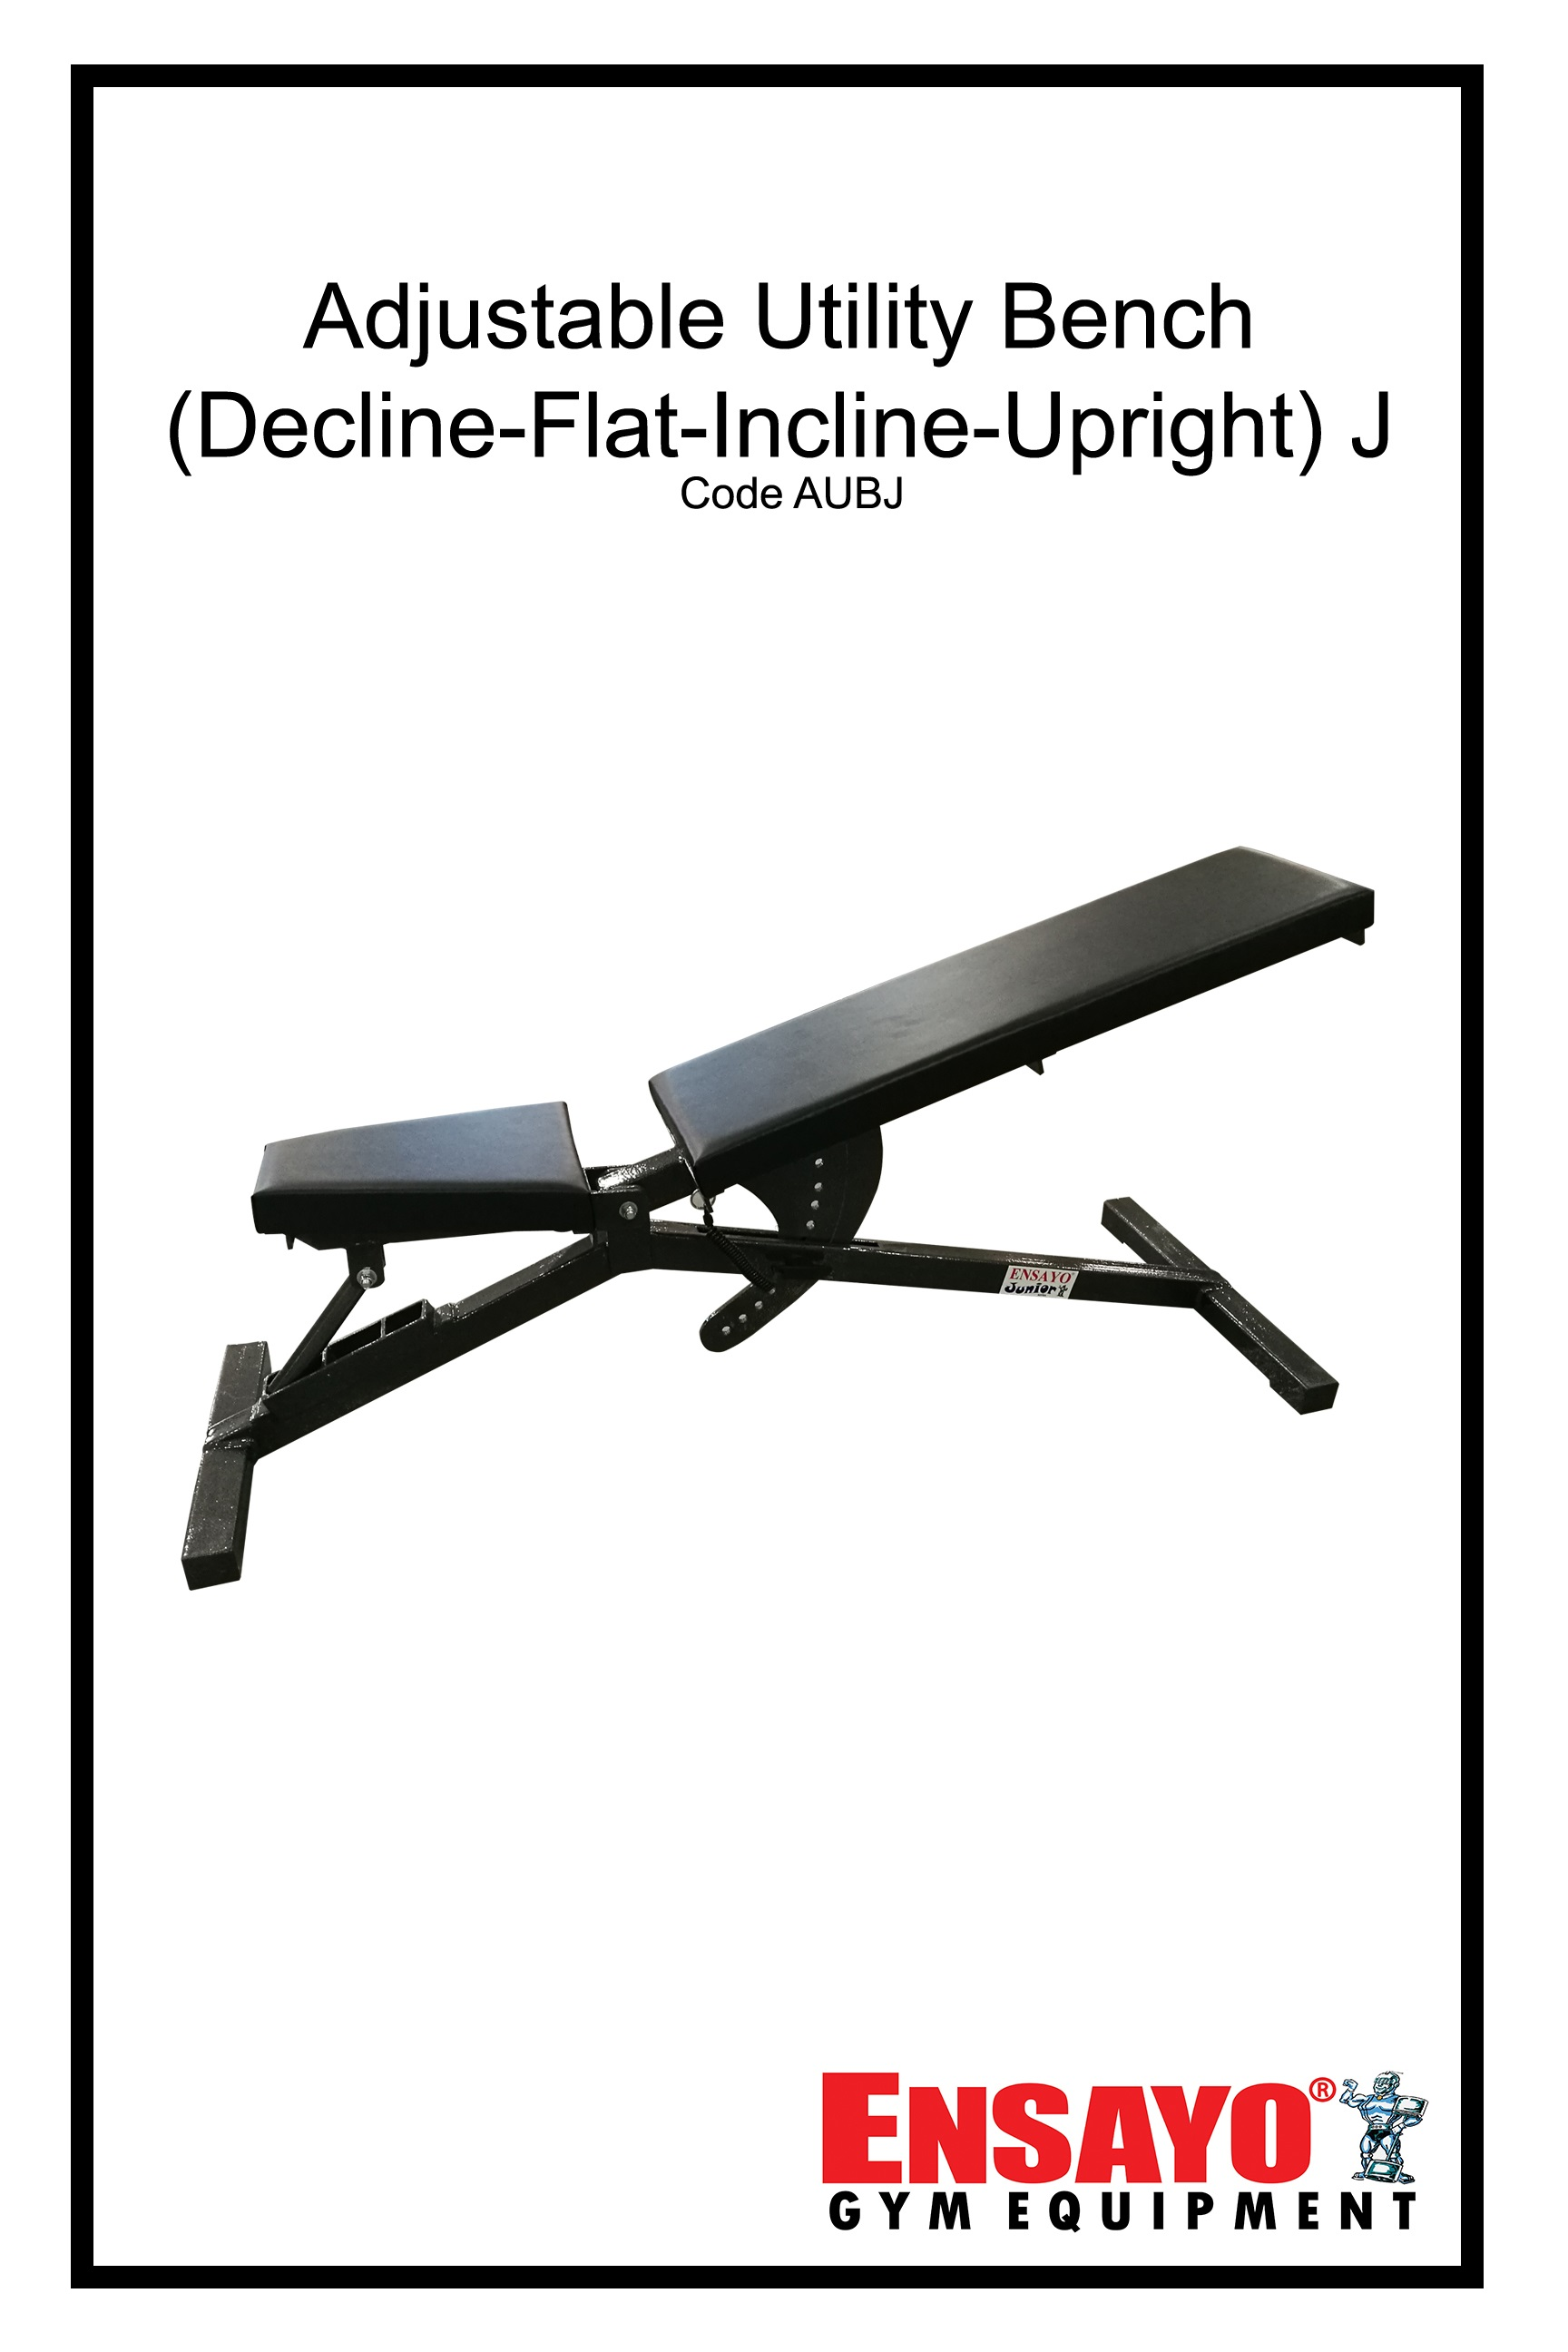 Fabulous Ensayo Adjustable Utility Bench Junior Best Home Commercial Gym Use Exercise Workout Fitness Bodybuilding Strength Power Training High Quality Pdpeps Interior Chair Design Pdpepsorg